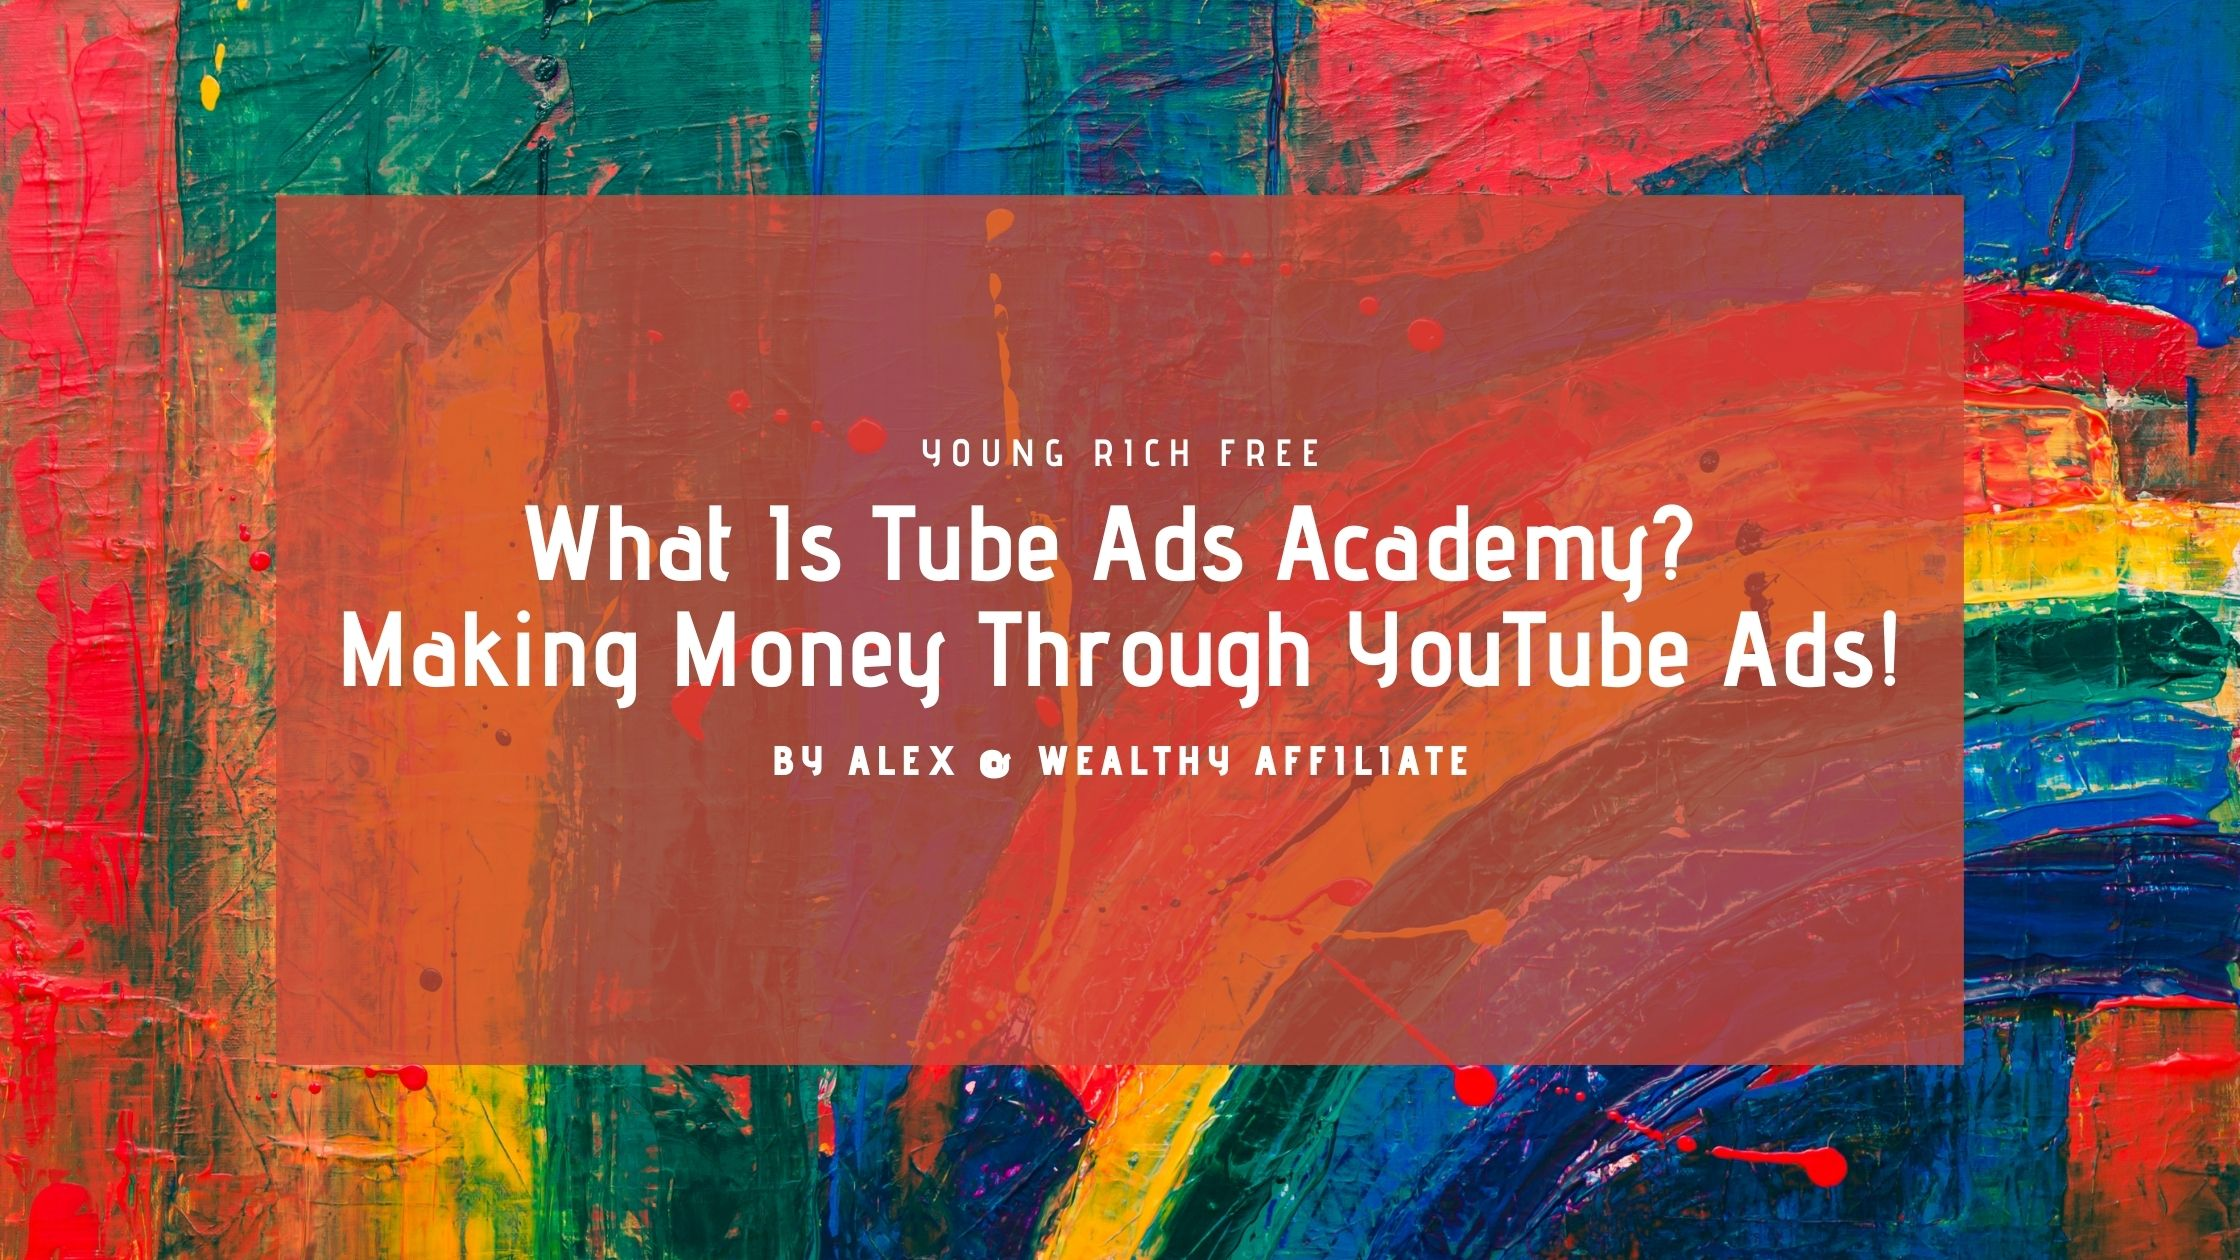 Tube Ads Academy